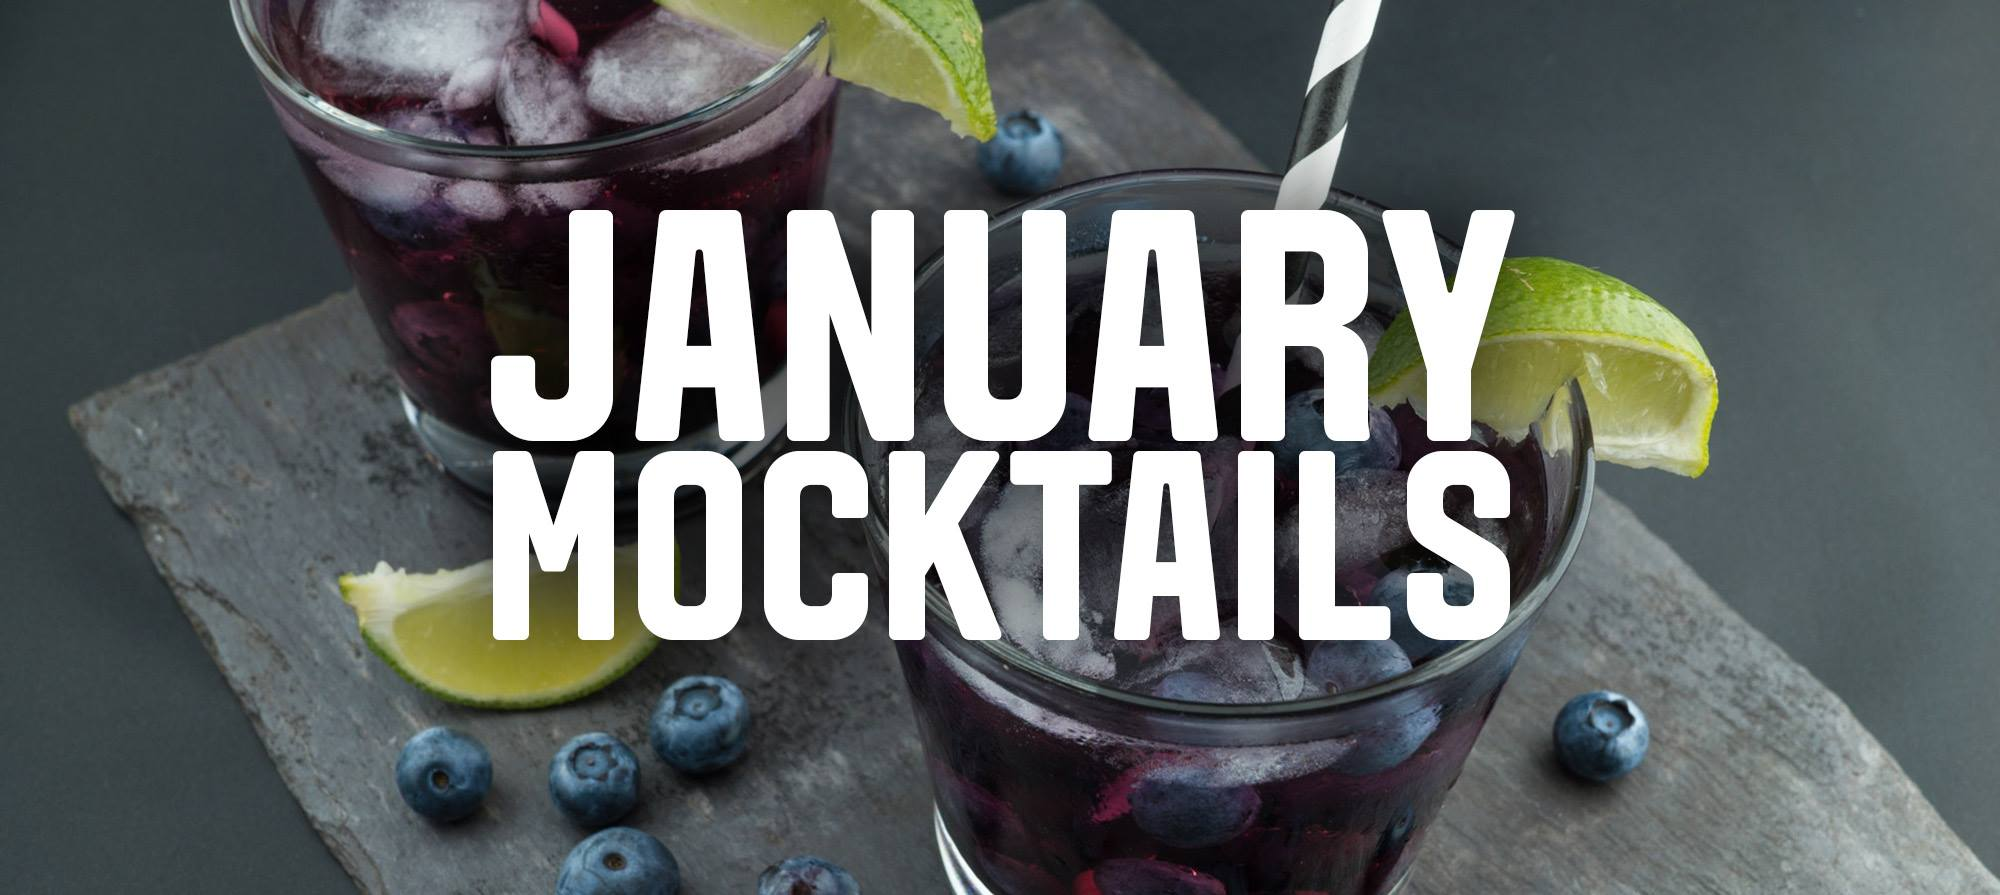 Mocktails To Help With That January Recovery